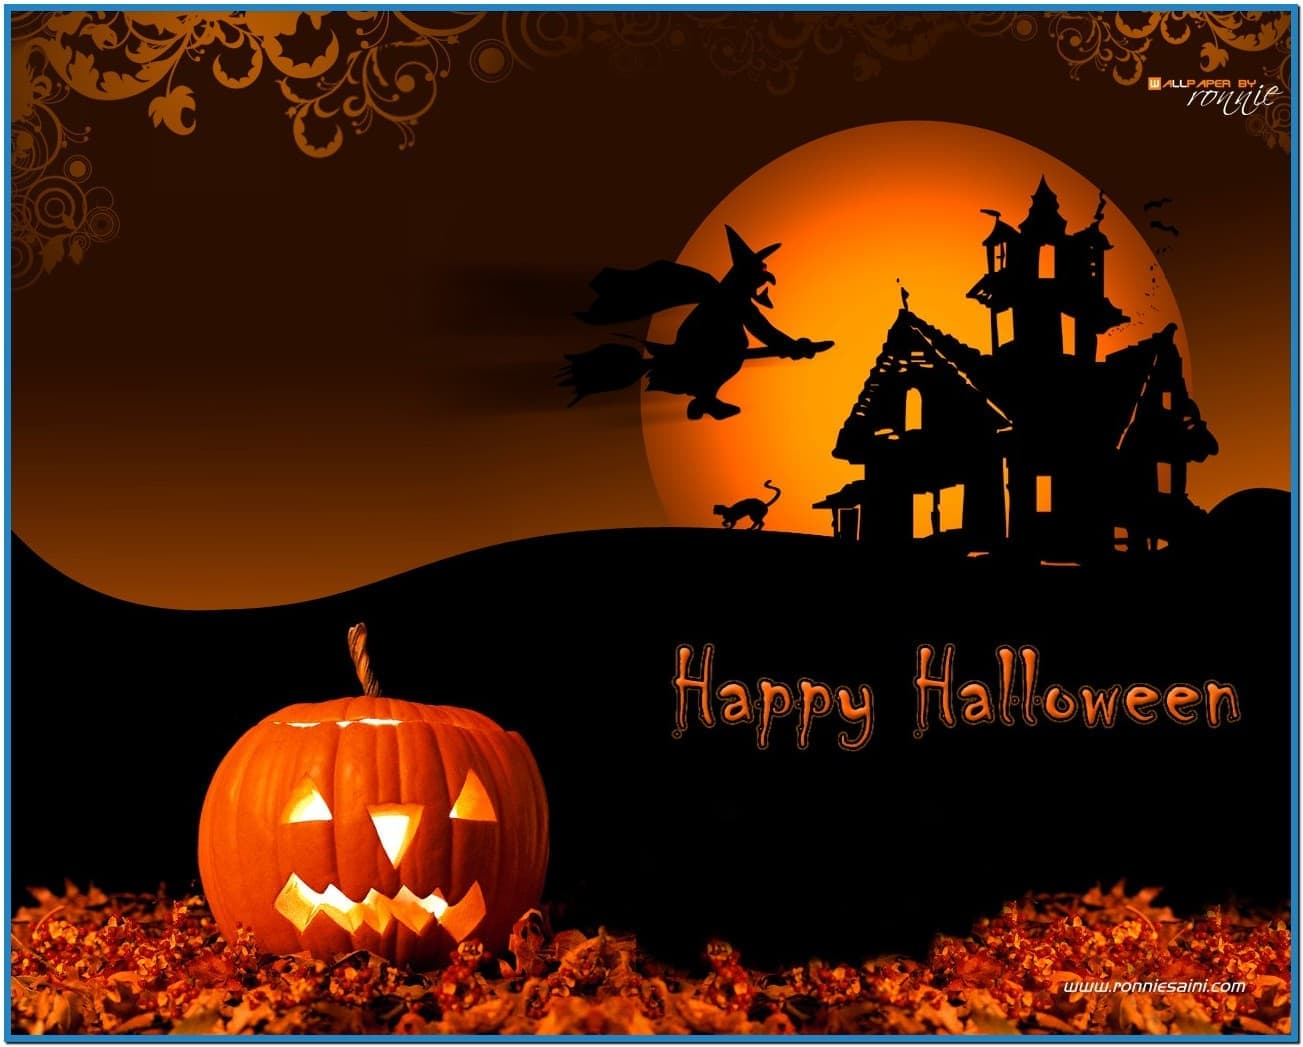 Disney Halloween Wallpaper Free Downloads – Free wallpaper download